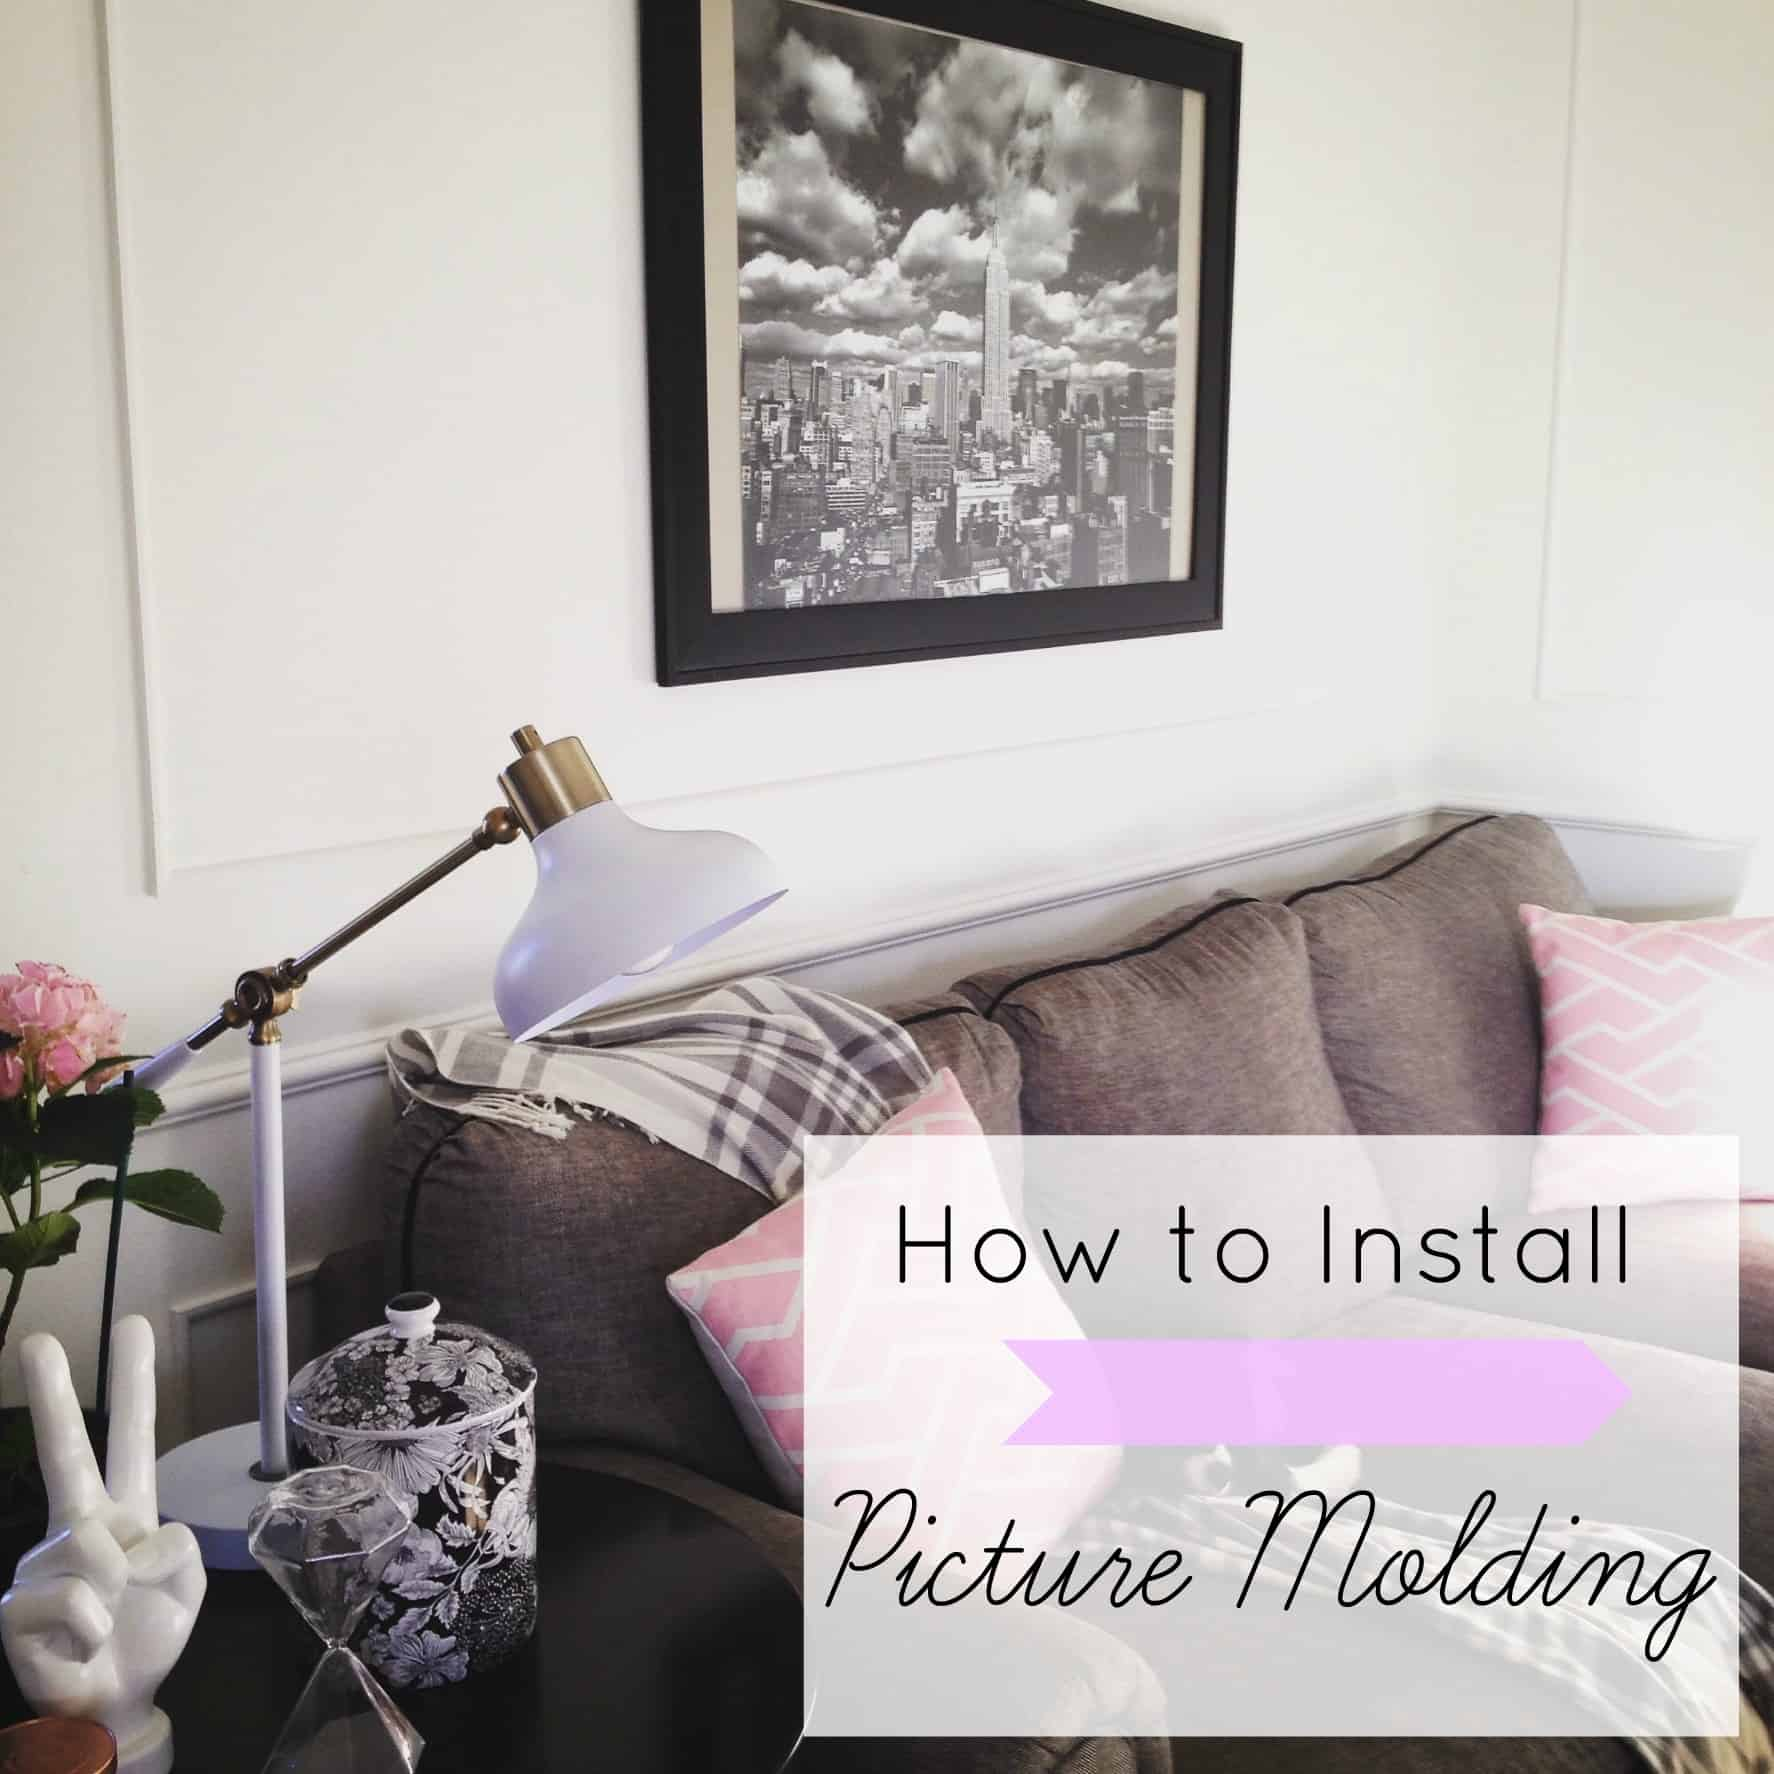 How to Install Picture Molding- Part 1